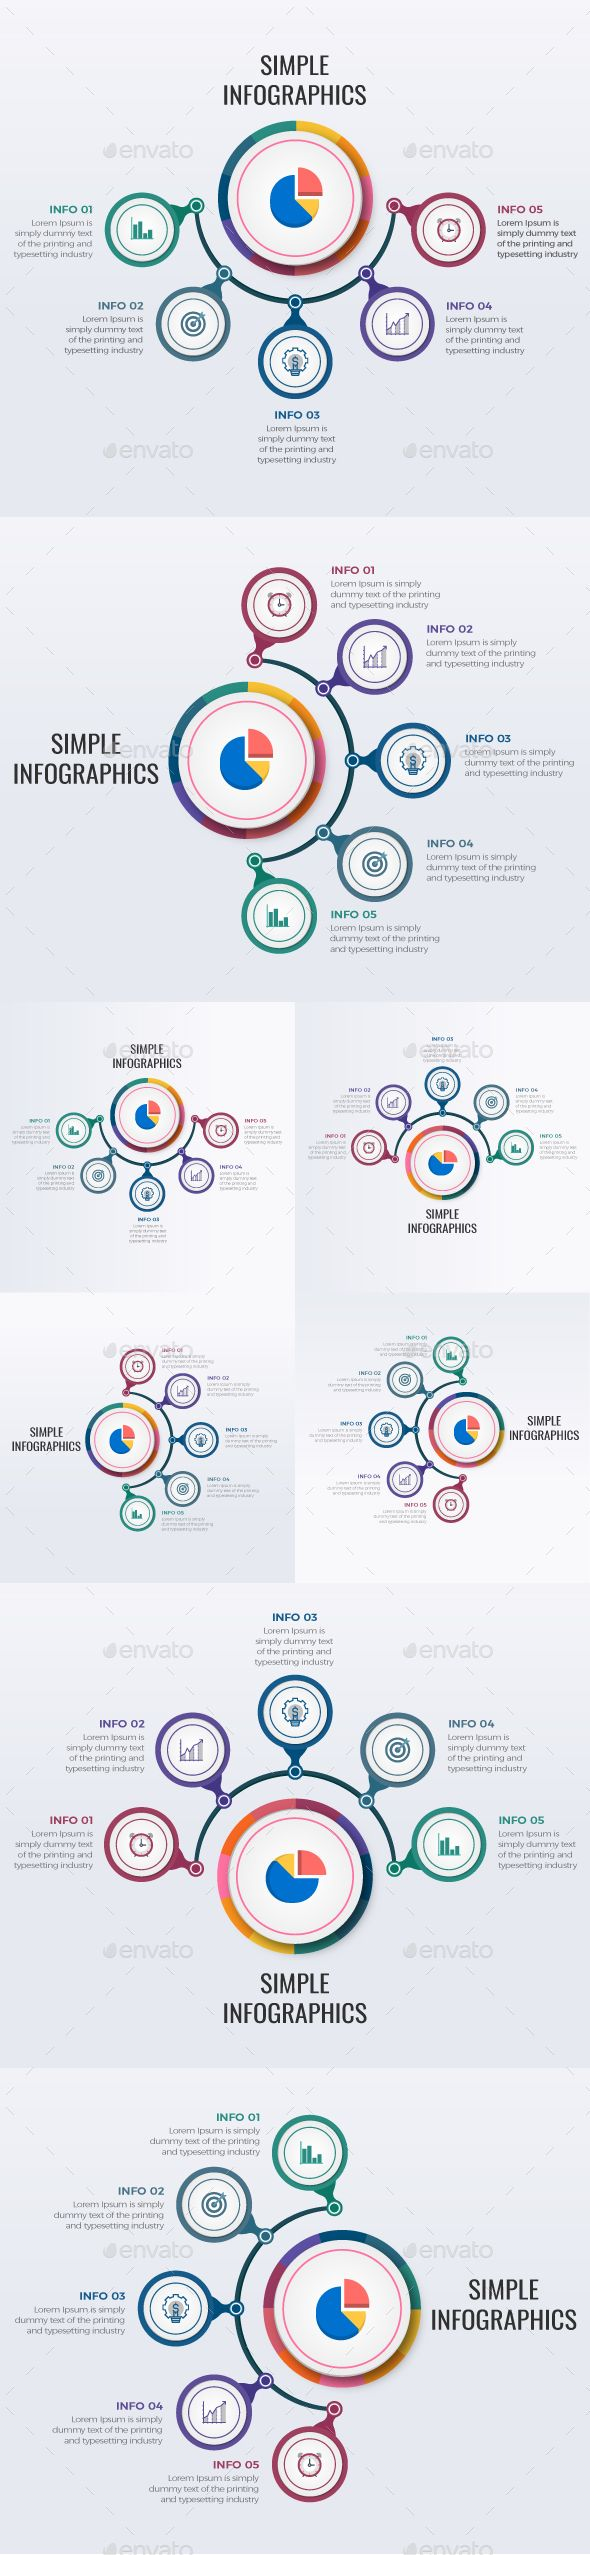 Simple Modern Circle Information - Infographics | DOWNLOAD: https://graphicriver.net/item/simple-modern-circle-information/20107627?ref=sinzo